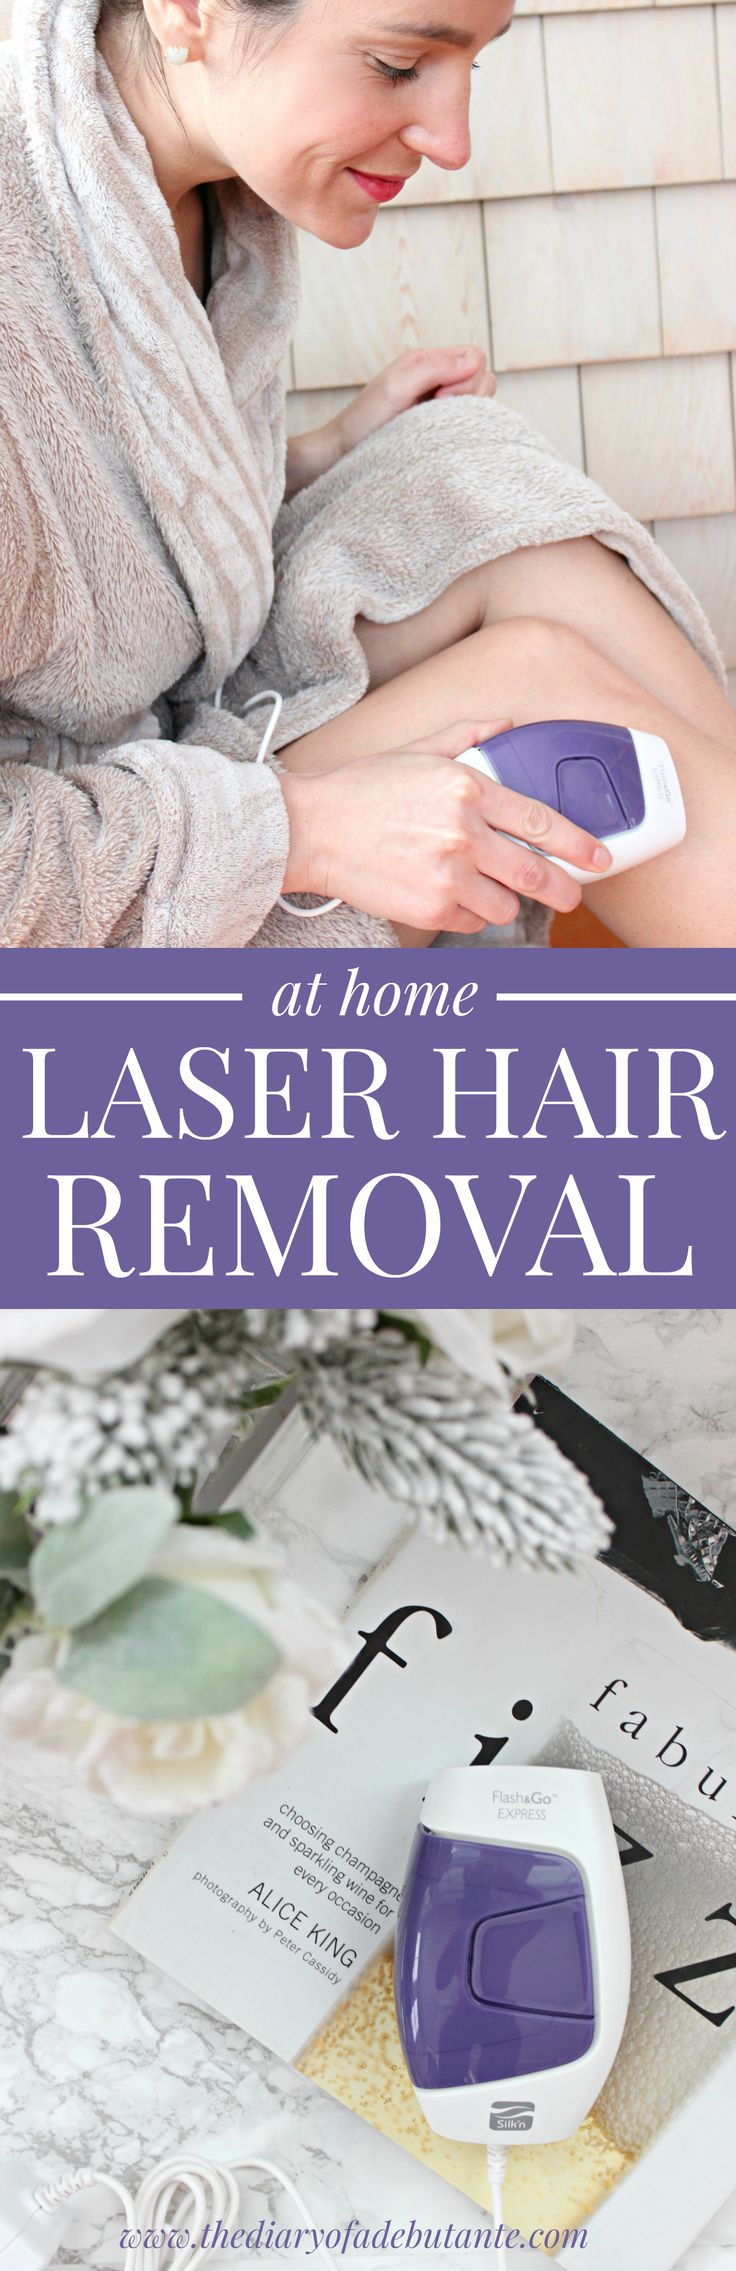 How to perform laser hair removal at home with the Silk'n Flash&Go Express hair removal device. Women can permanently remove unwanted hair anywhere below your cheeks on your face, on your legs, on your bikini line, and on your arms. Guys can use it on their skin, too!